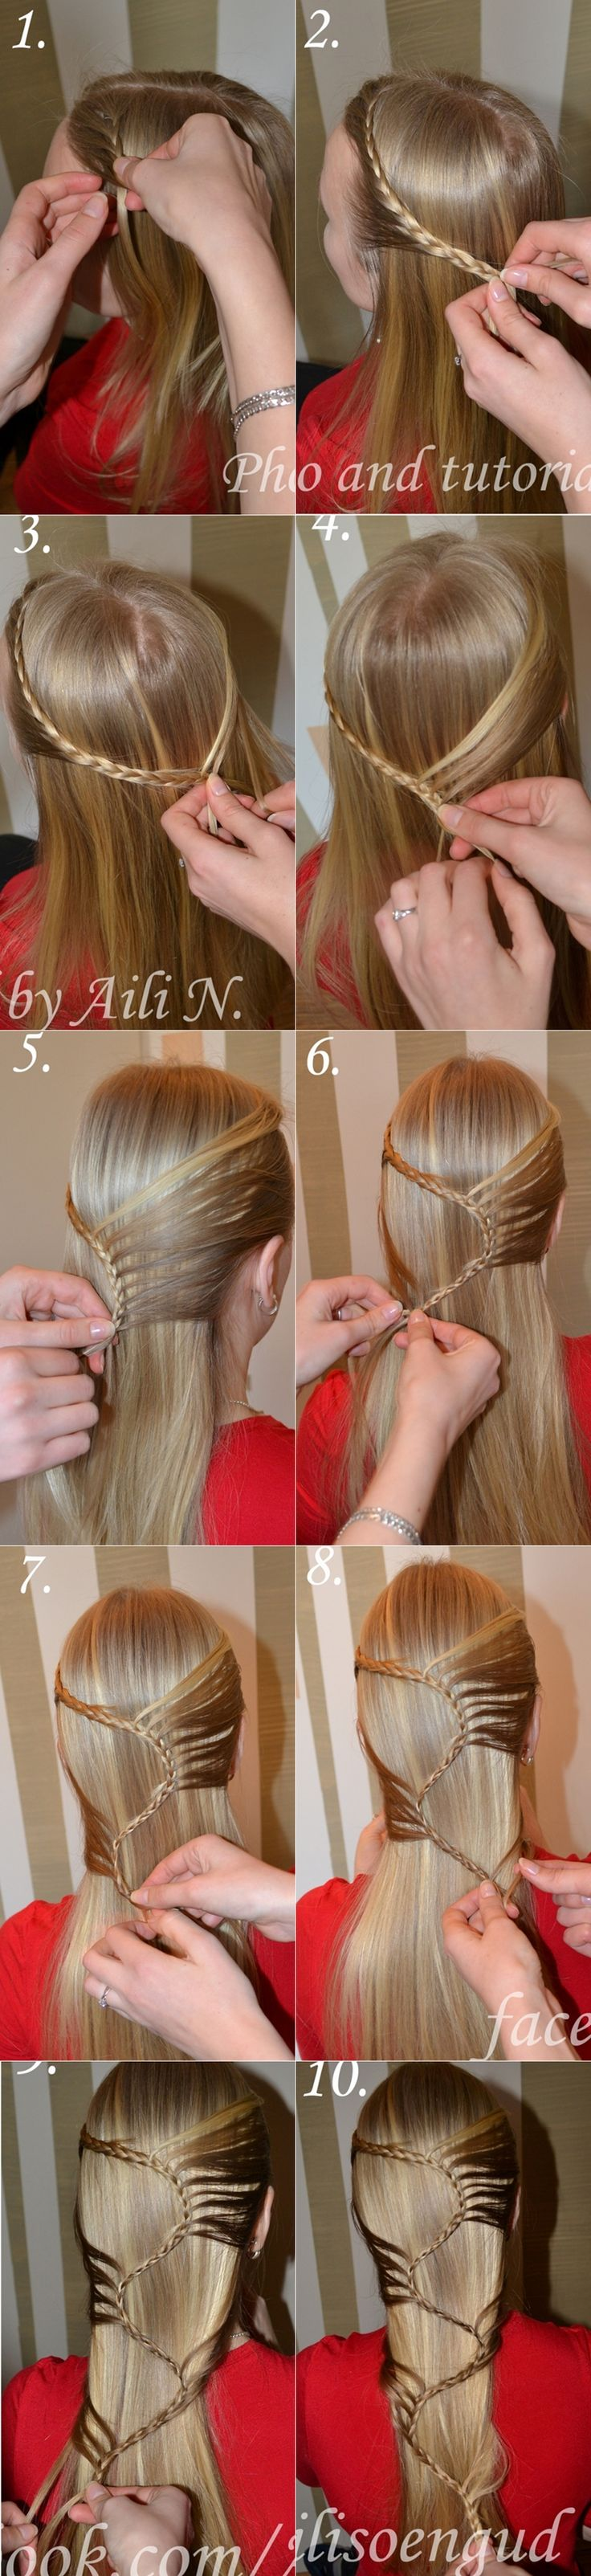 The best images about hairstyles on pinterest updo buns and